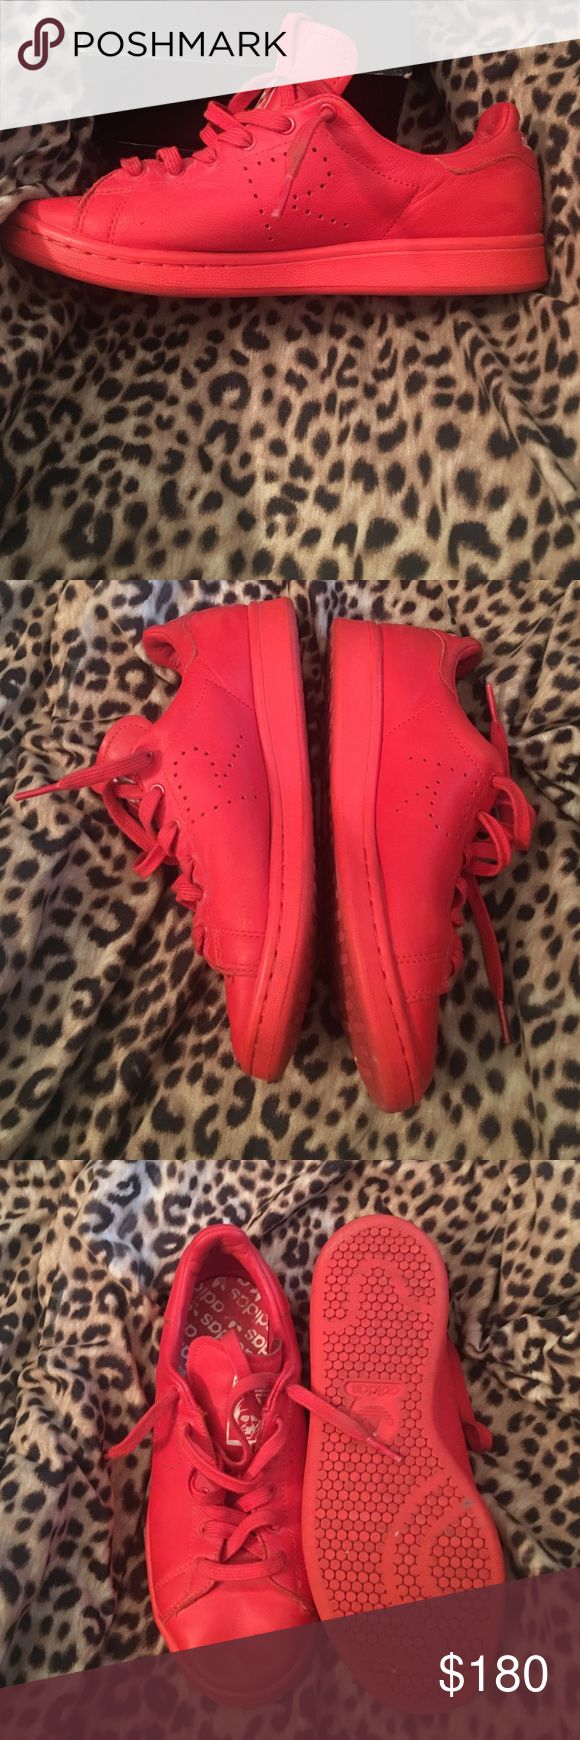 All red Raf Simmons All red adidas Raf Simmons. Has some wear to it but nothing a rag a water won't fix. Still in great condition. Raf Simons Shoes Sneakers